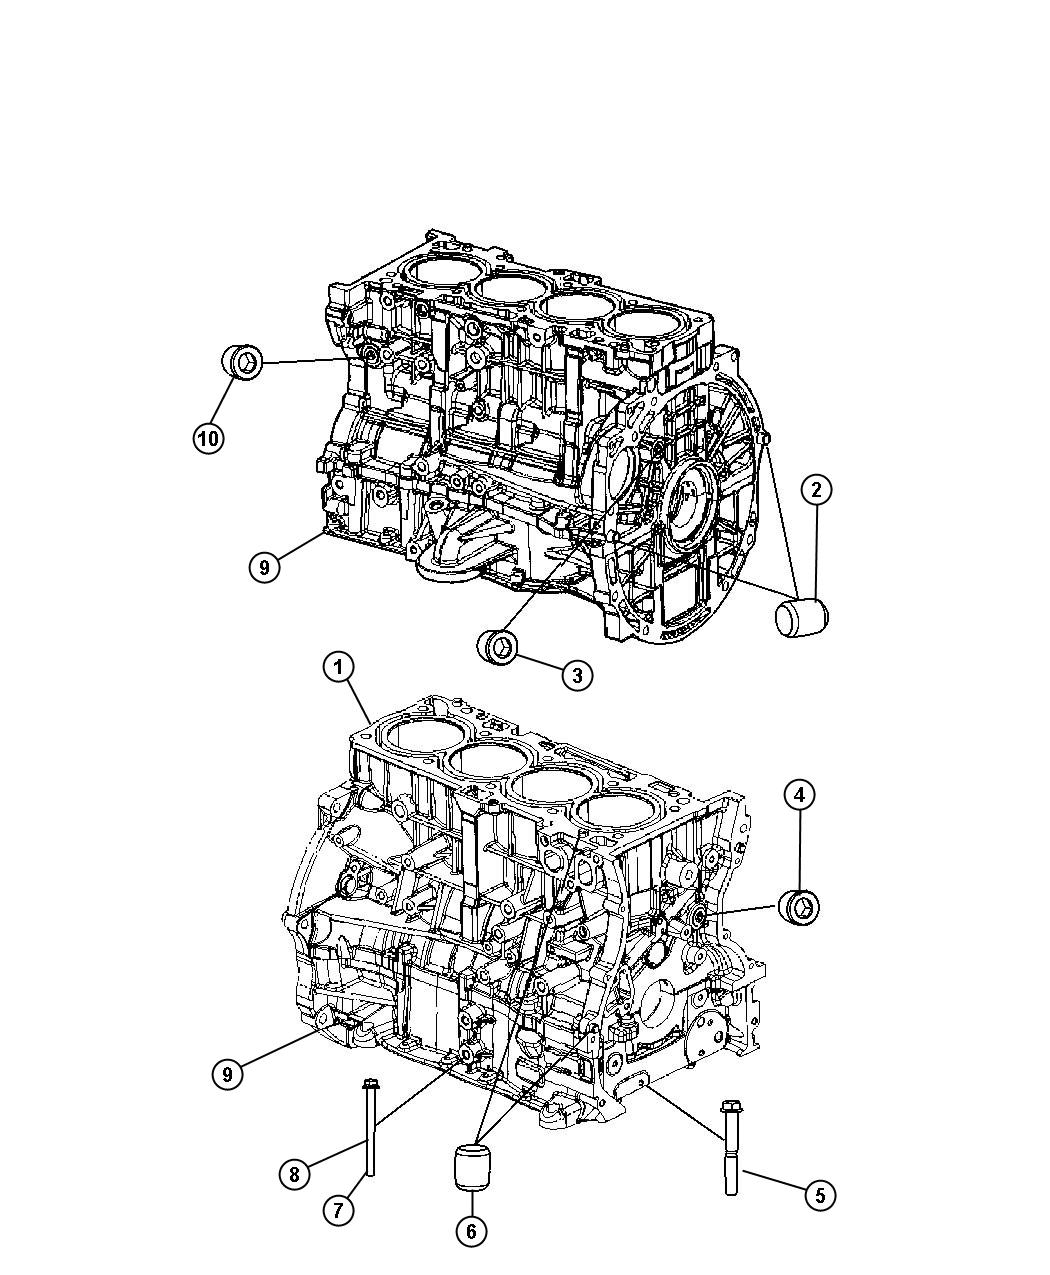 Jeep Patriot Engine Short Block